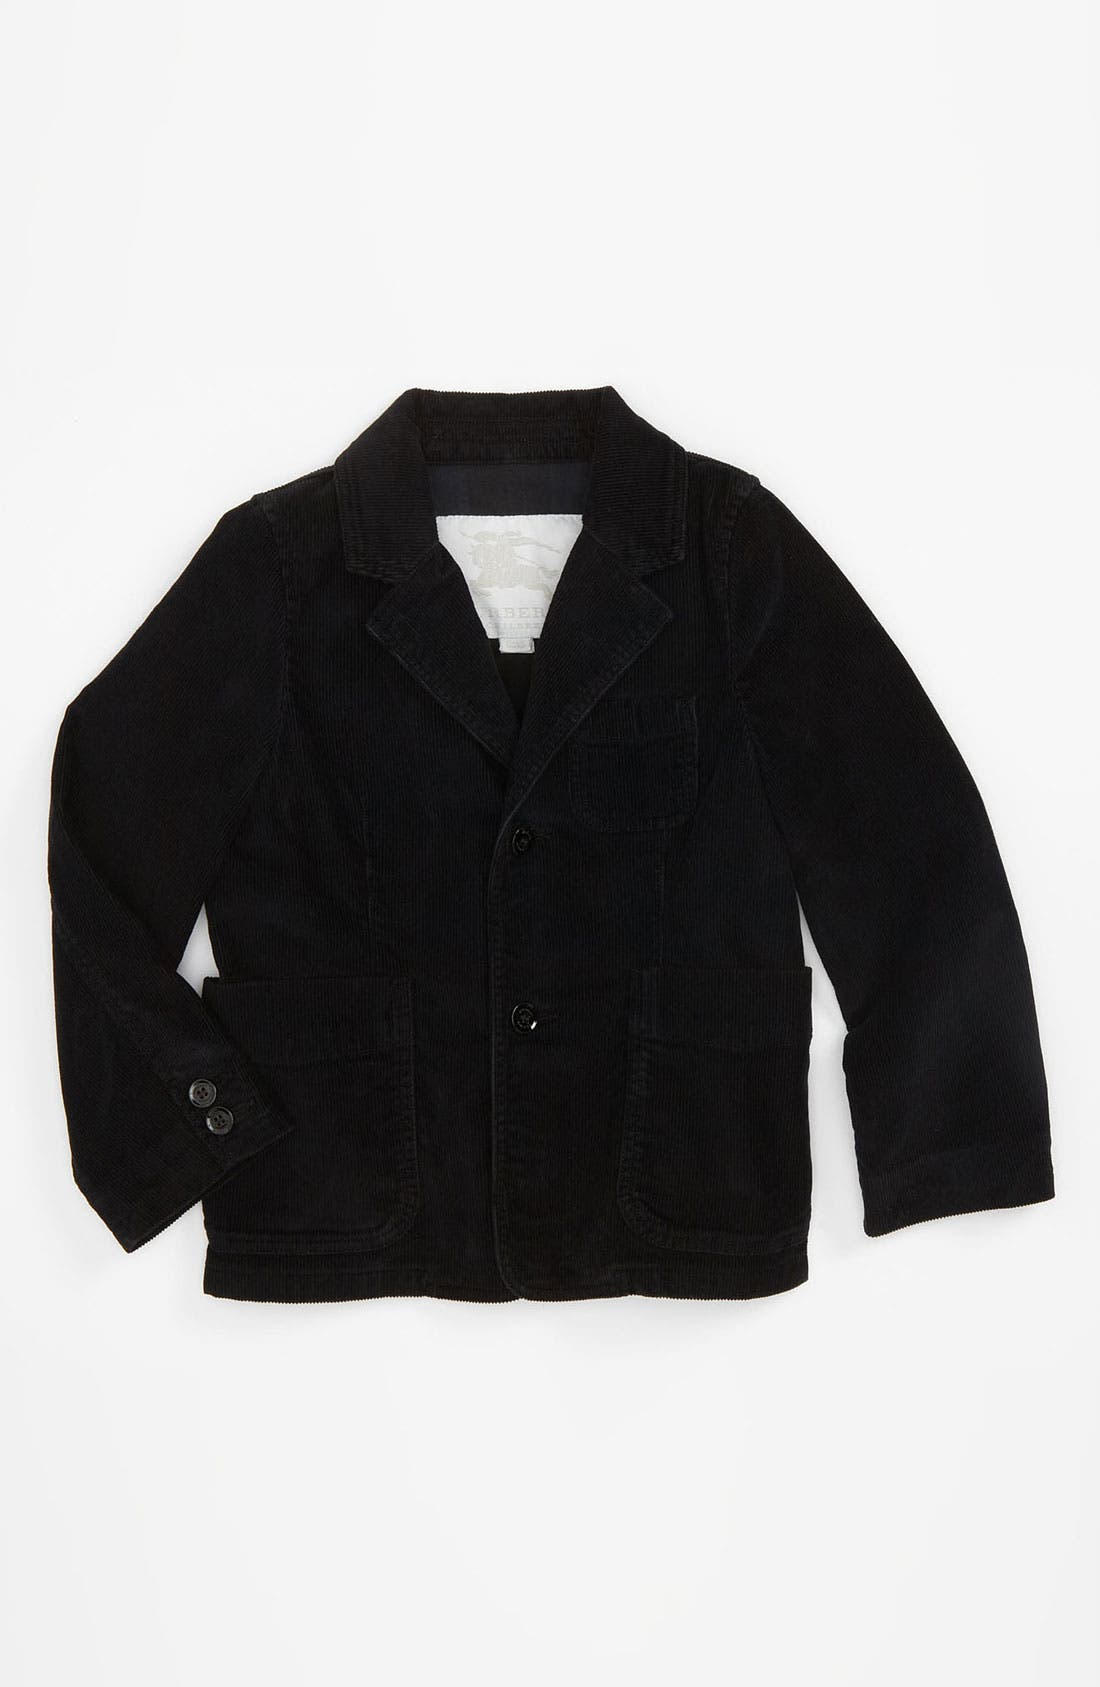 Alternate Image 1 Selected - Burberry Tailored Corduroy Jacket (Infant)